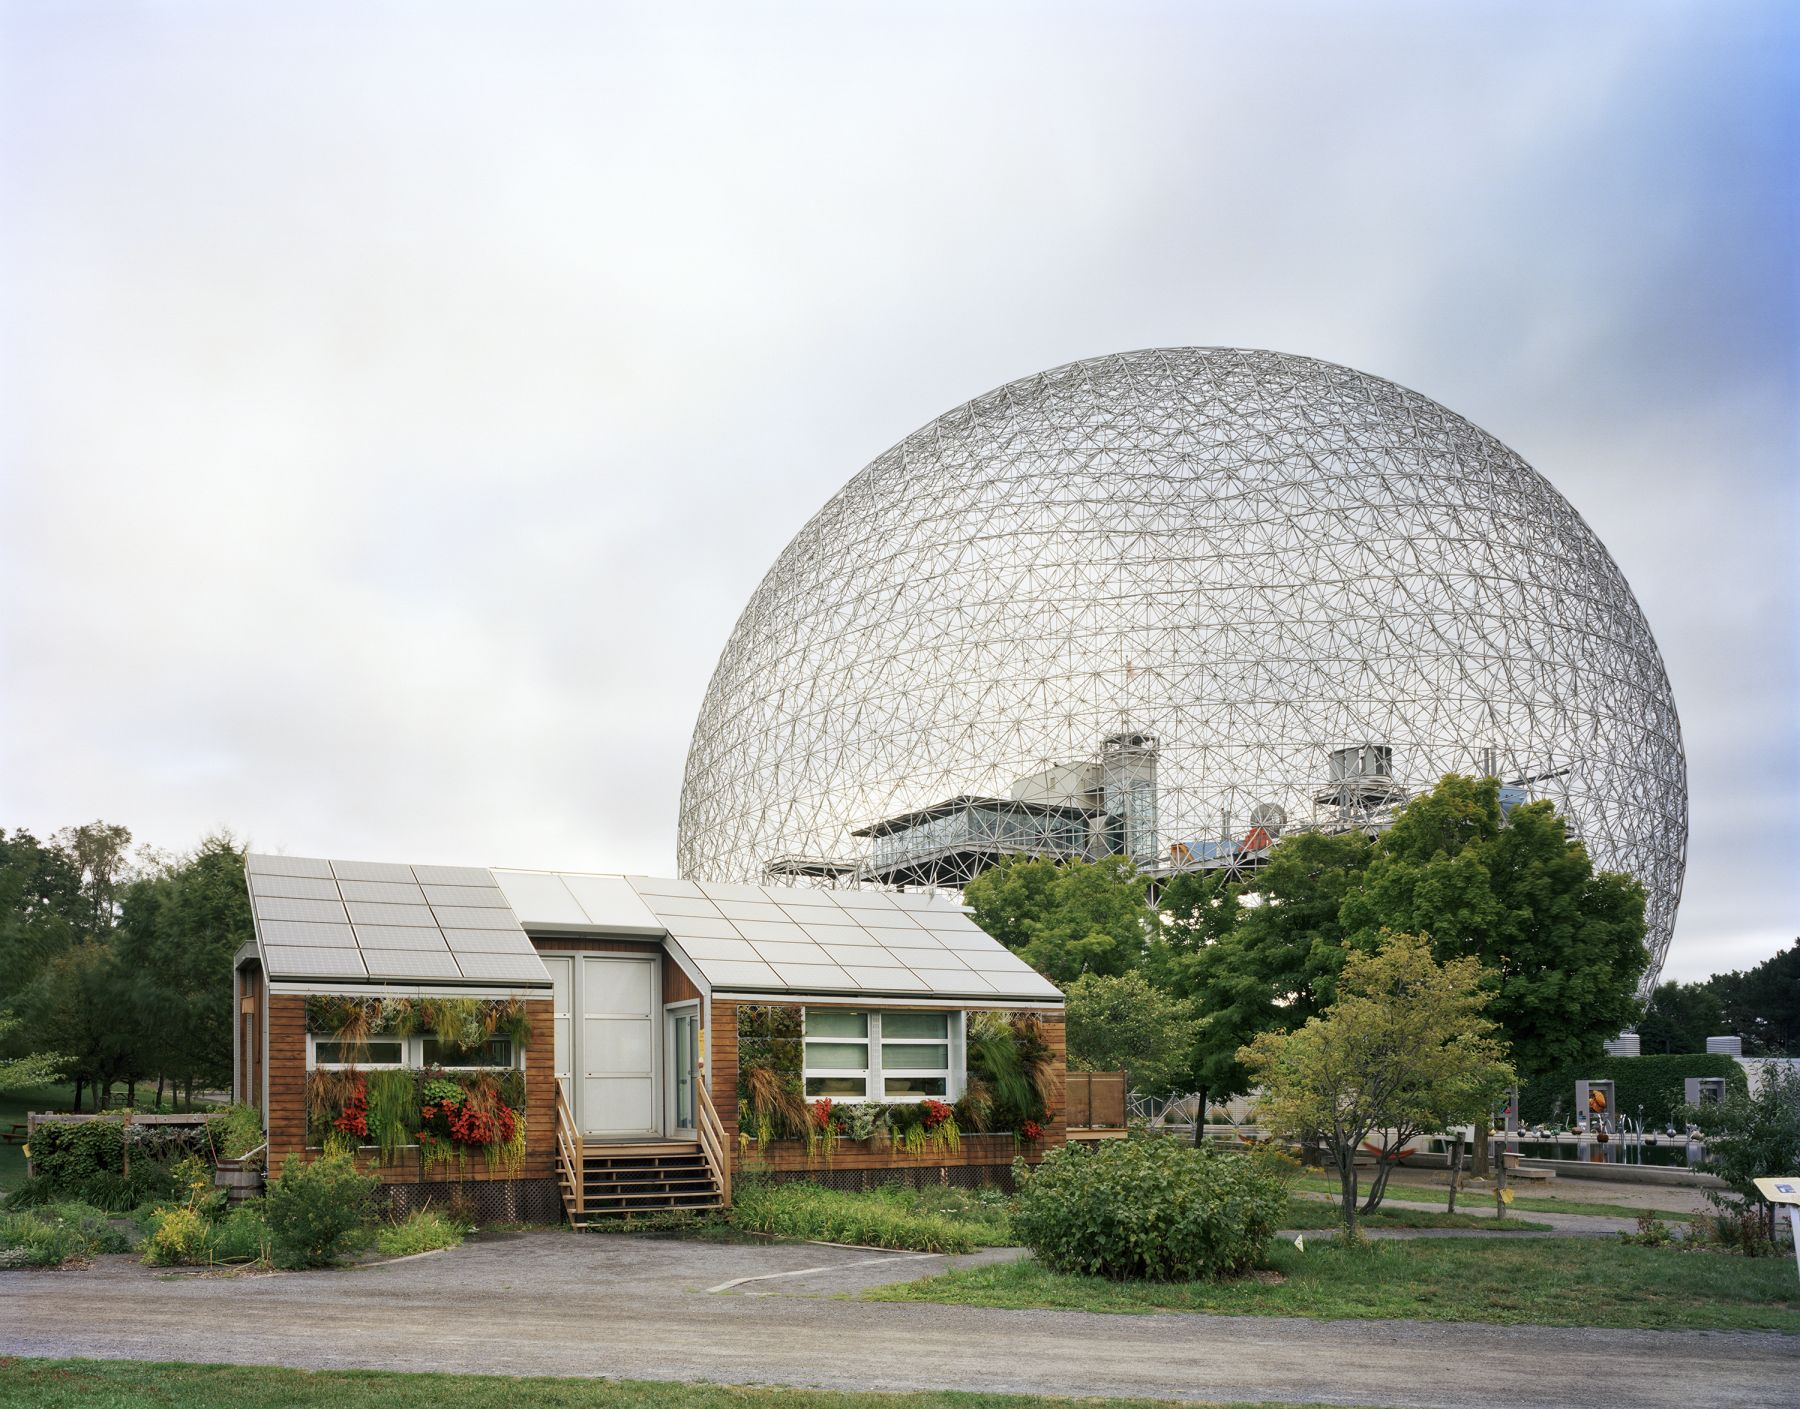 Jade Doskow, Montreal 1967 World's Fair, Man and His World, Buckminster Fuller's Geodesic Dome with Solar Experimental House, 2012, Archival Pigment Print,  30h x 40w in, Edition of 5, Photography